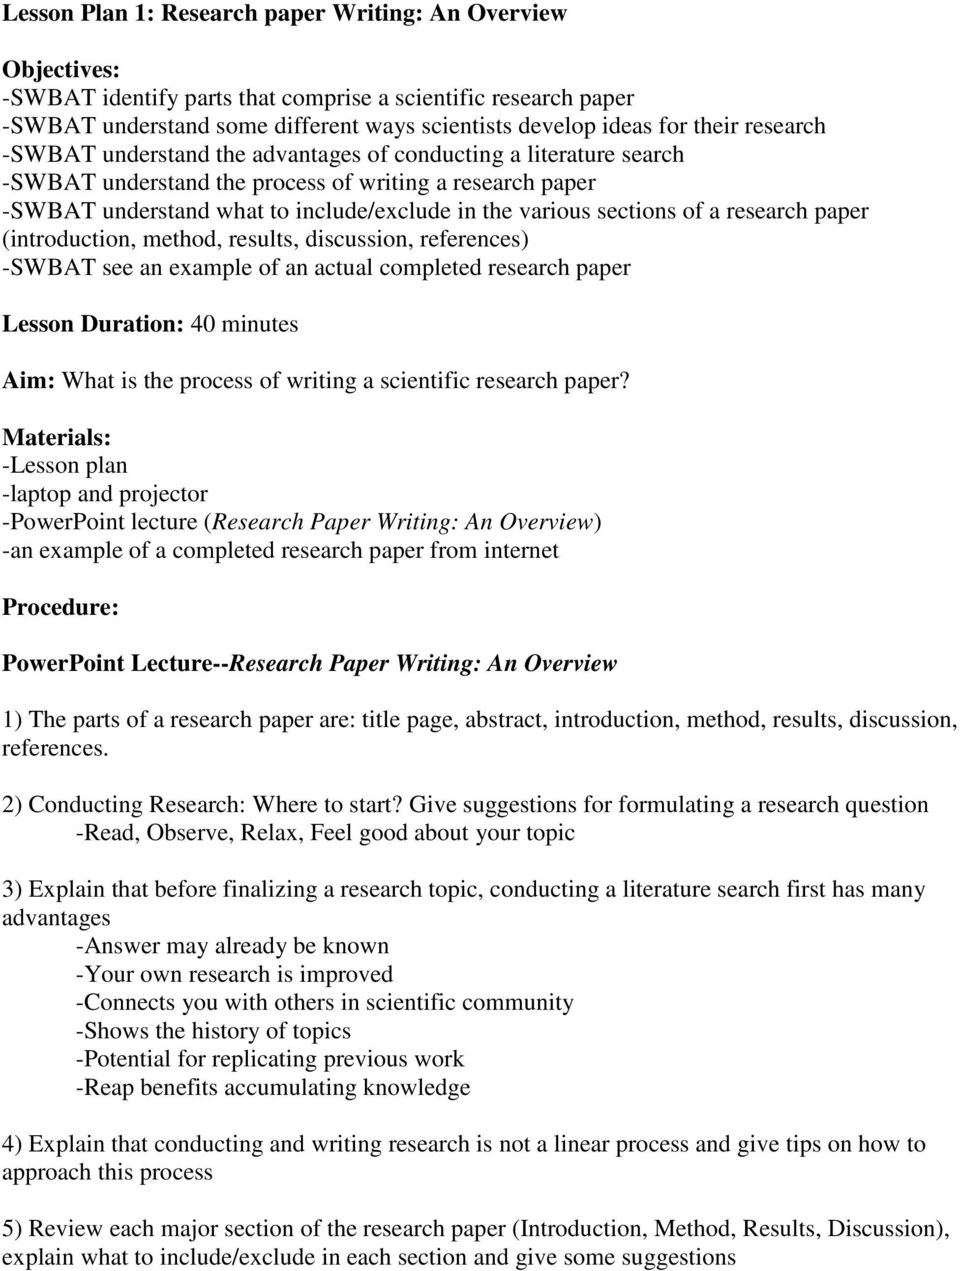 005 Page 1 Research Paper Parts Of Best A Ppt Chapter 5 Qualitative Full